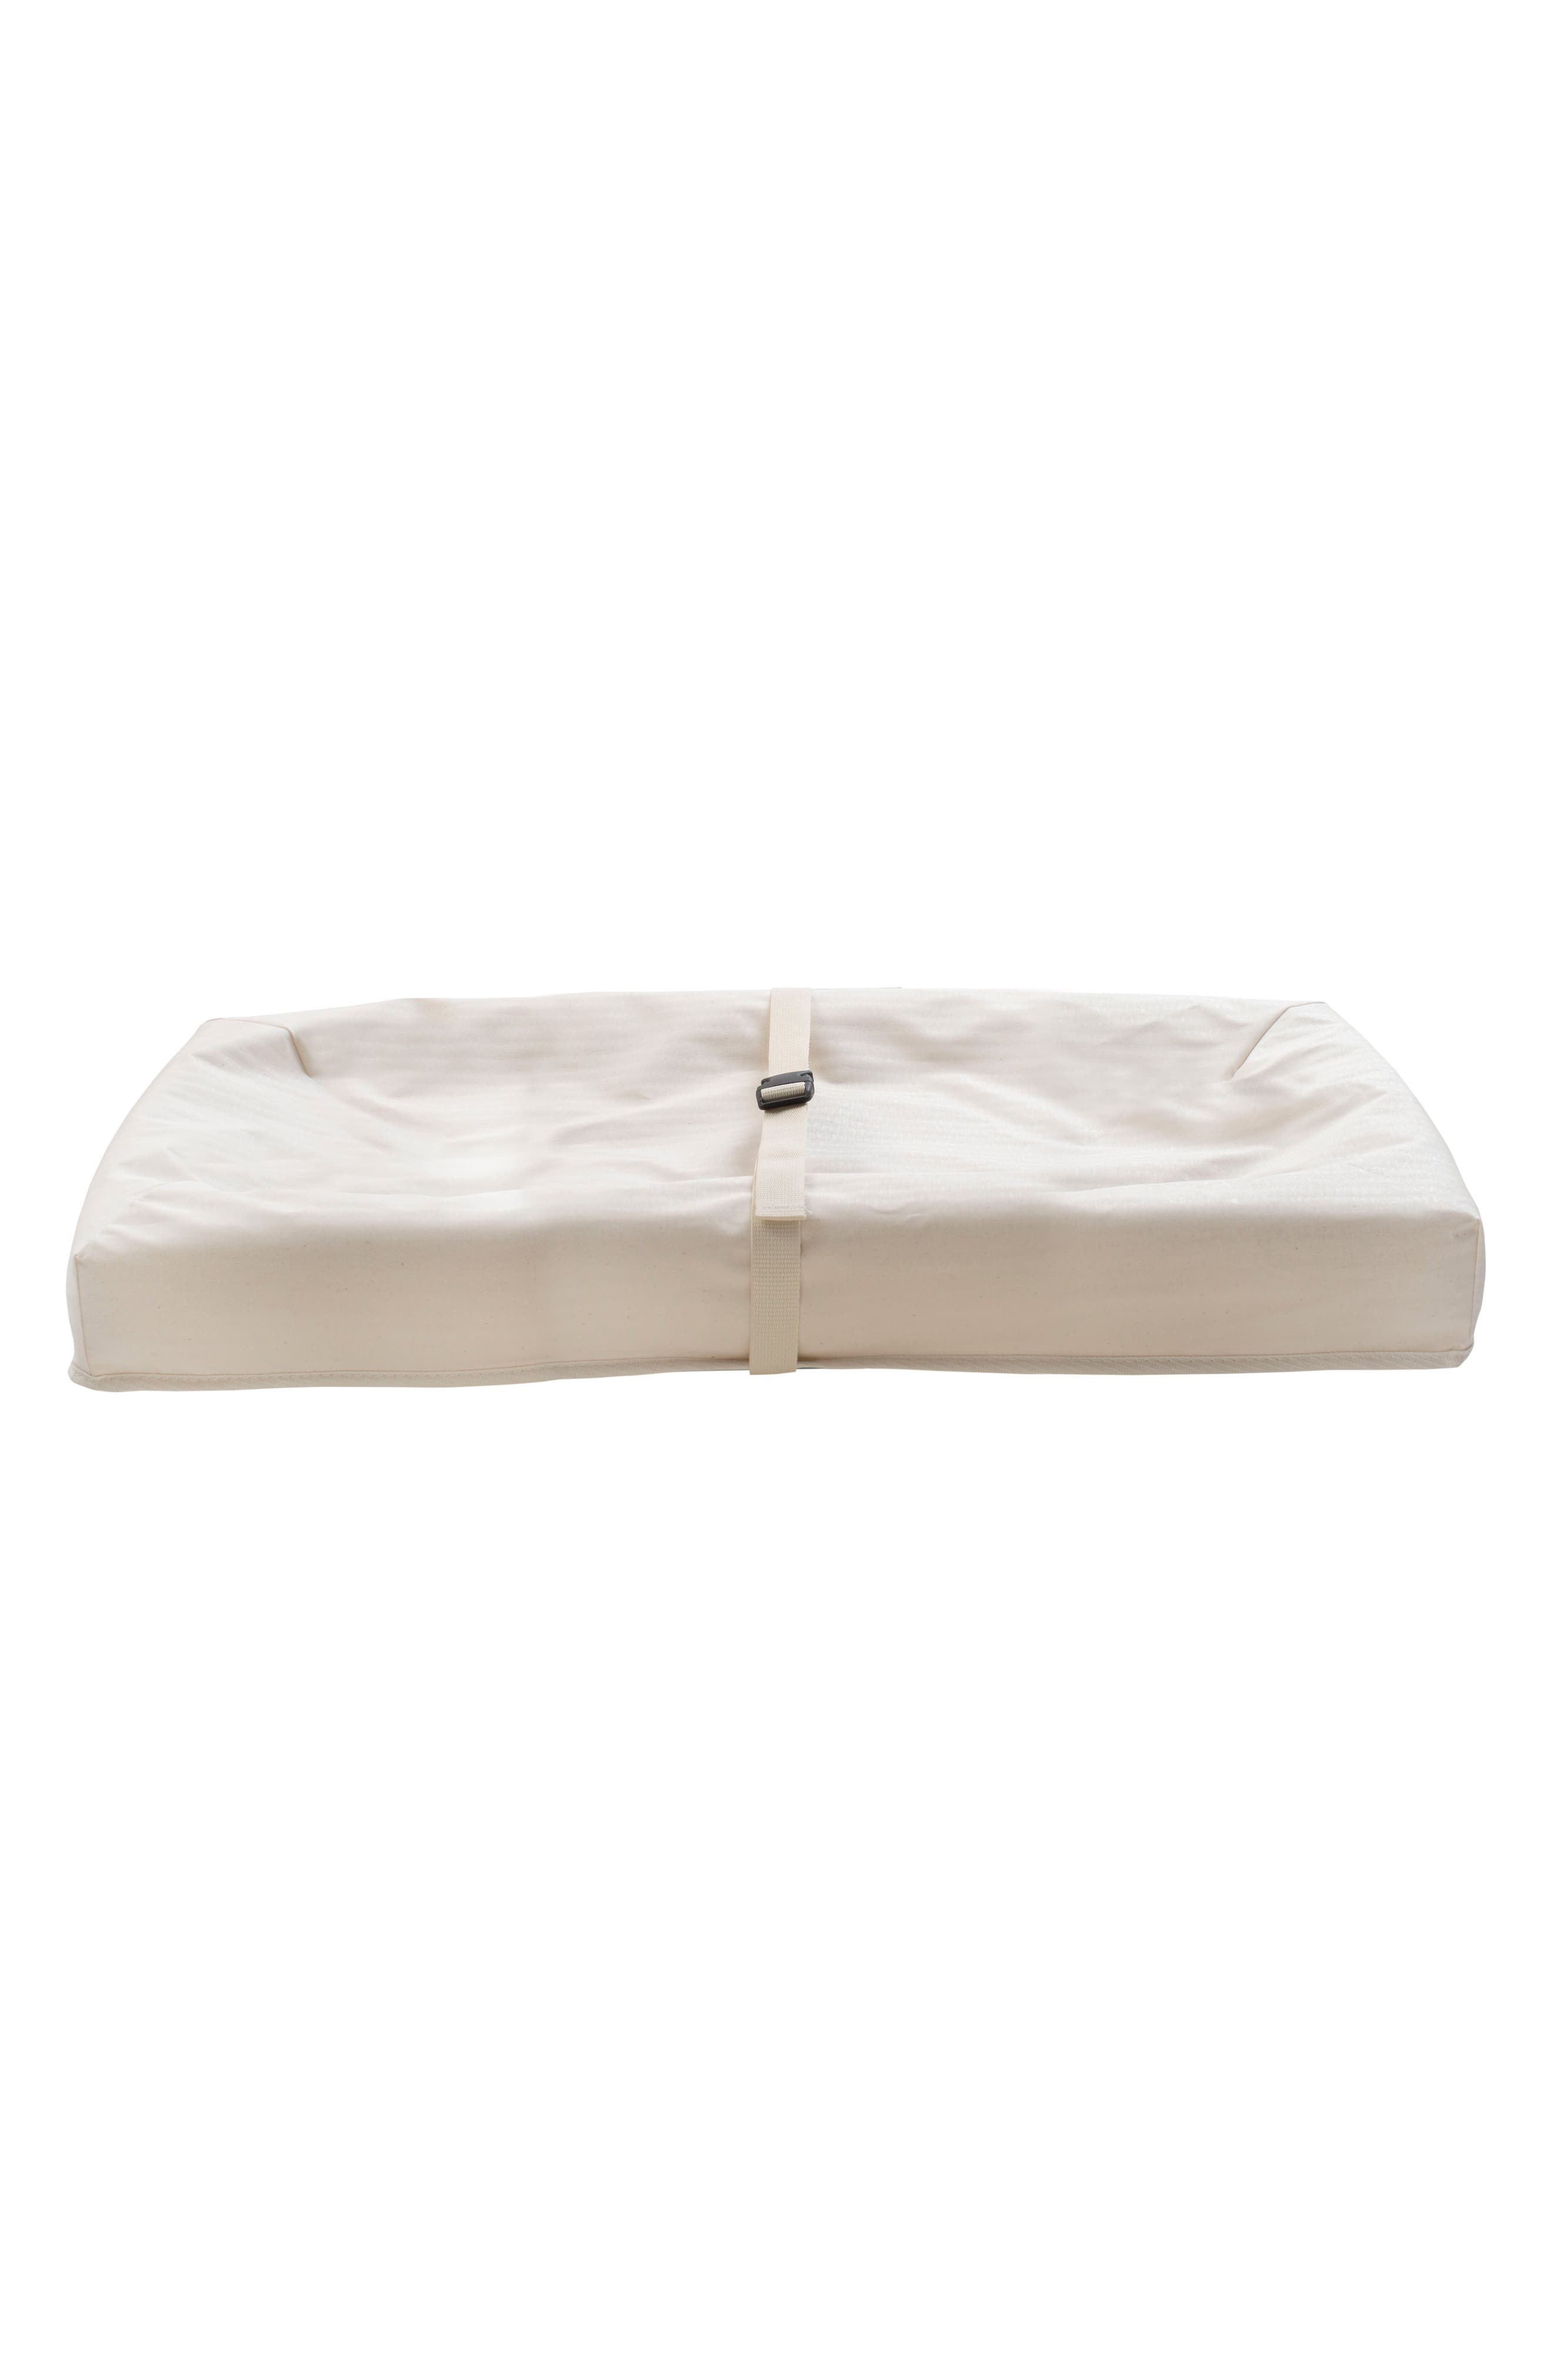 Main Image - Naturepedic x Rosie Pope Pure & Secure Four-Sided Changing Pad (Nordstrom Exclusive)